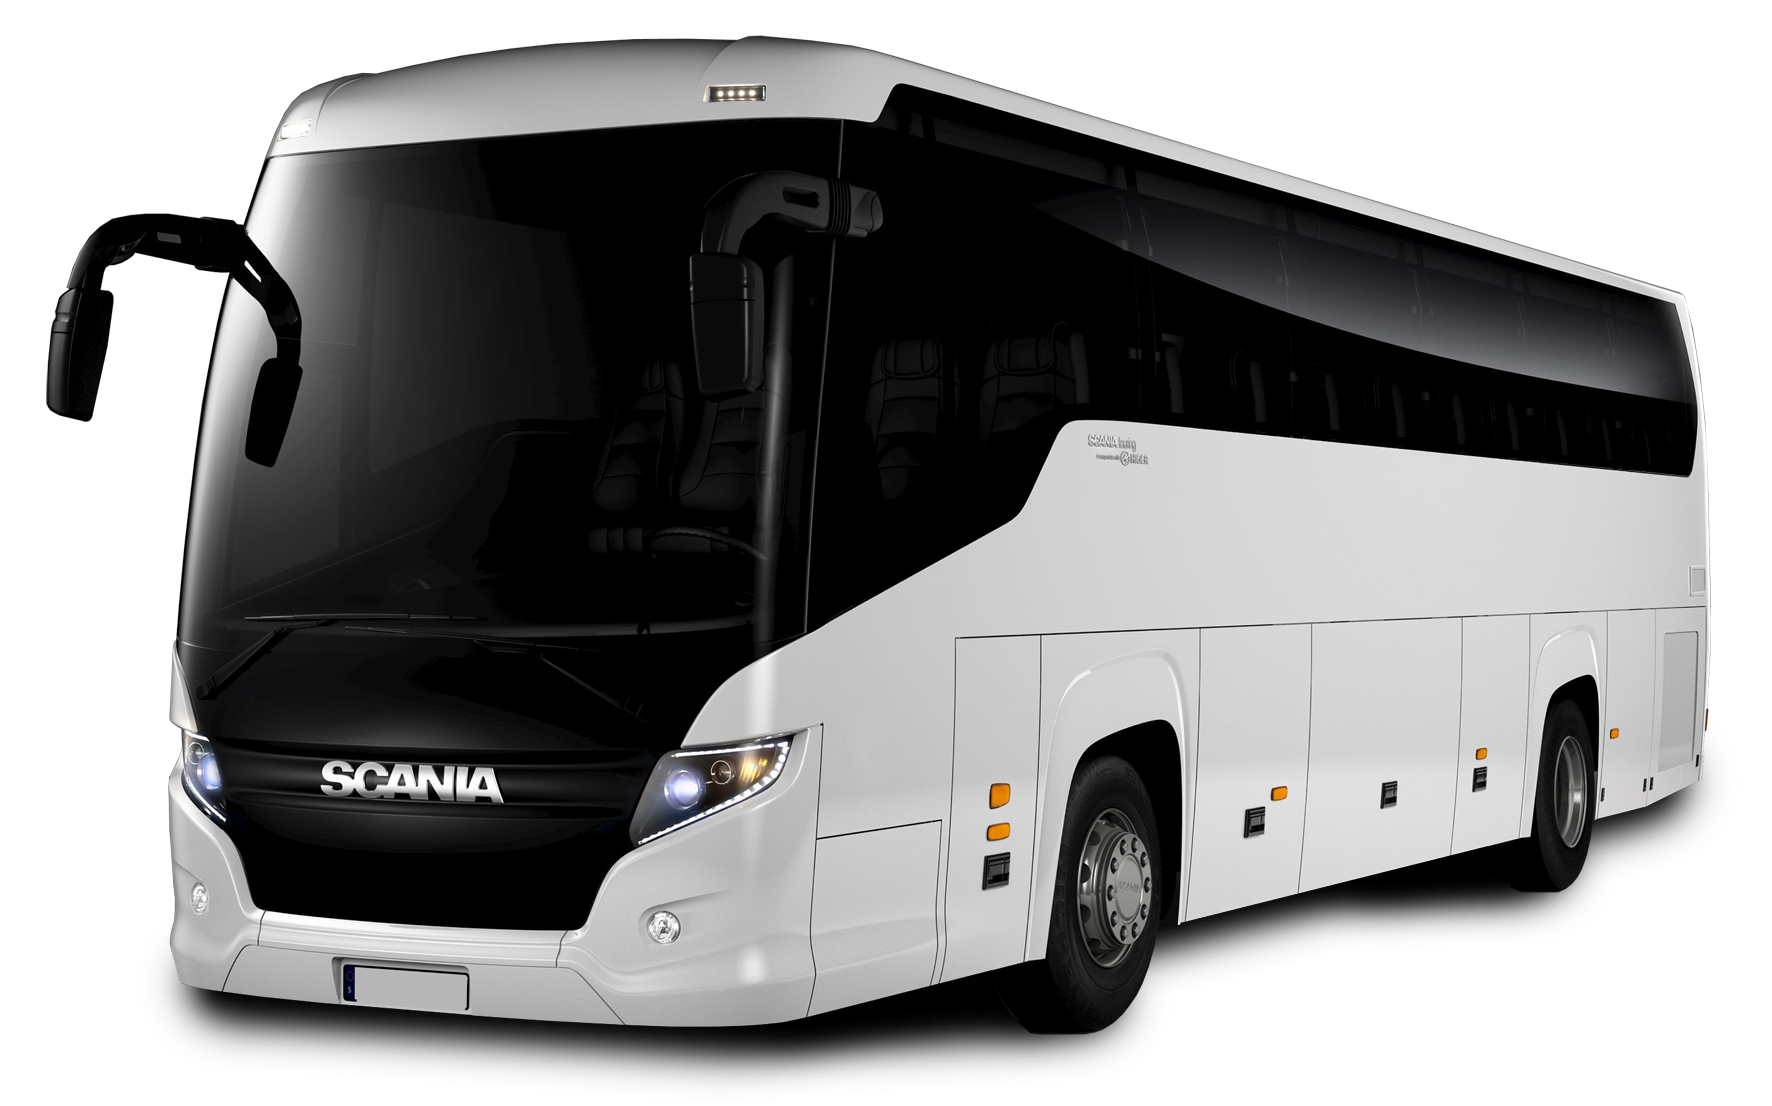 scania-bus-transparenta